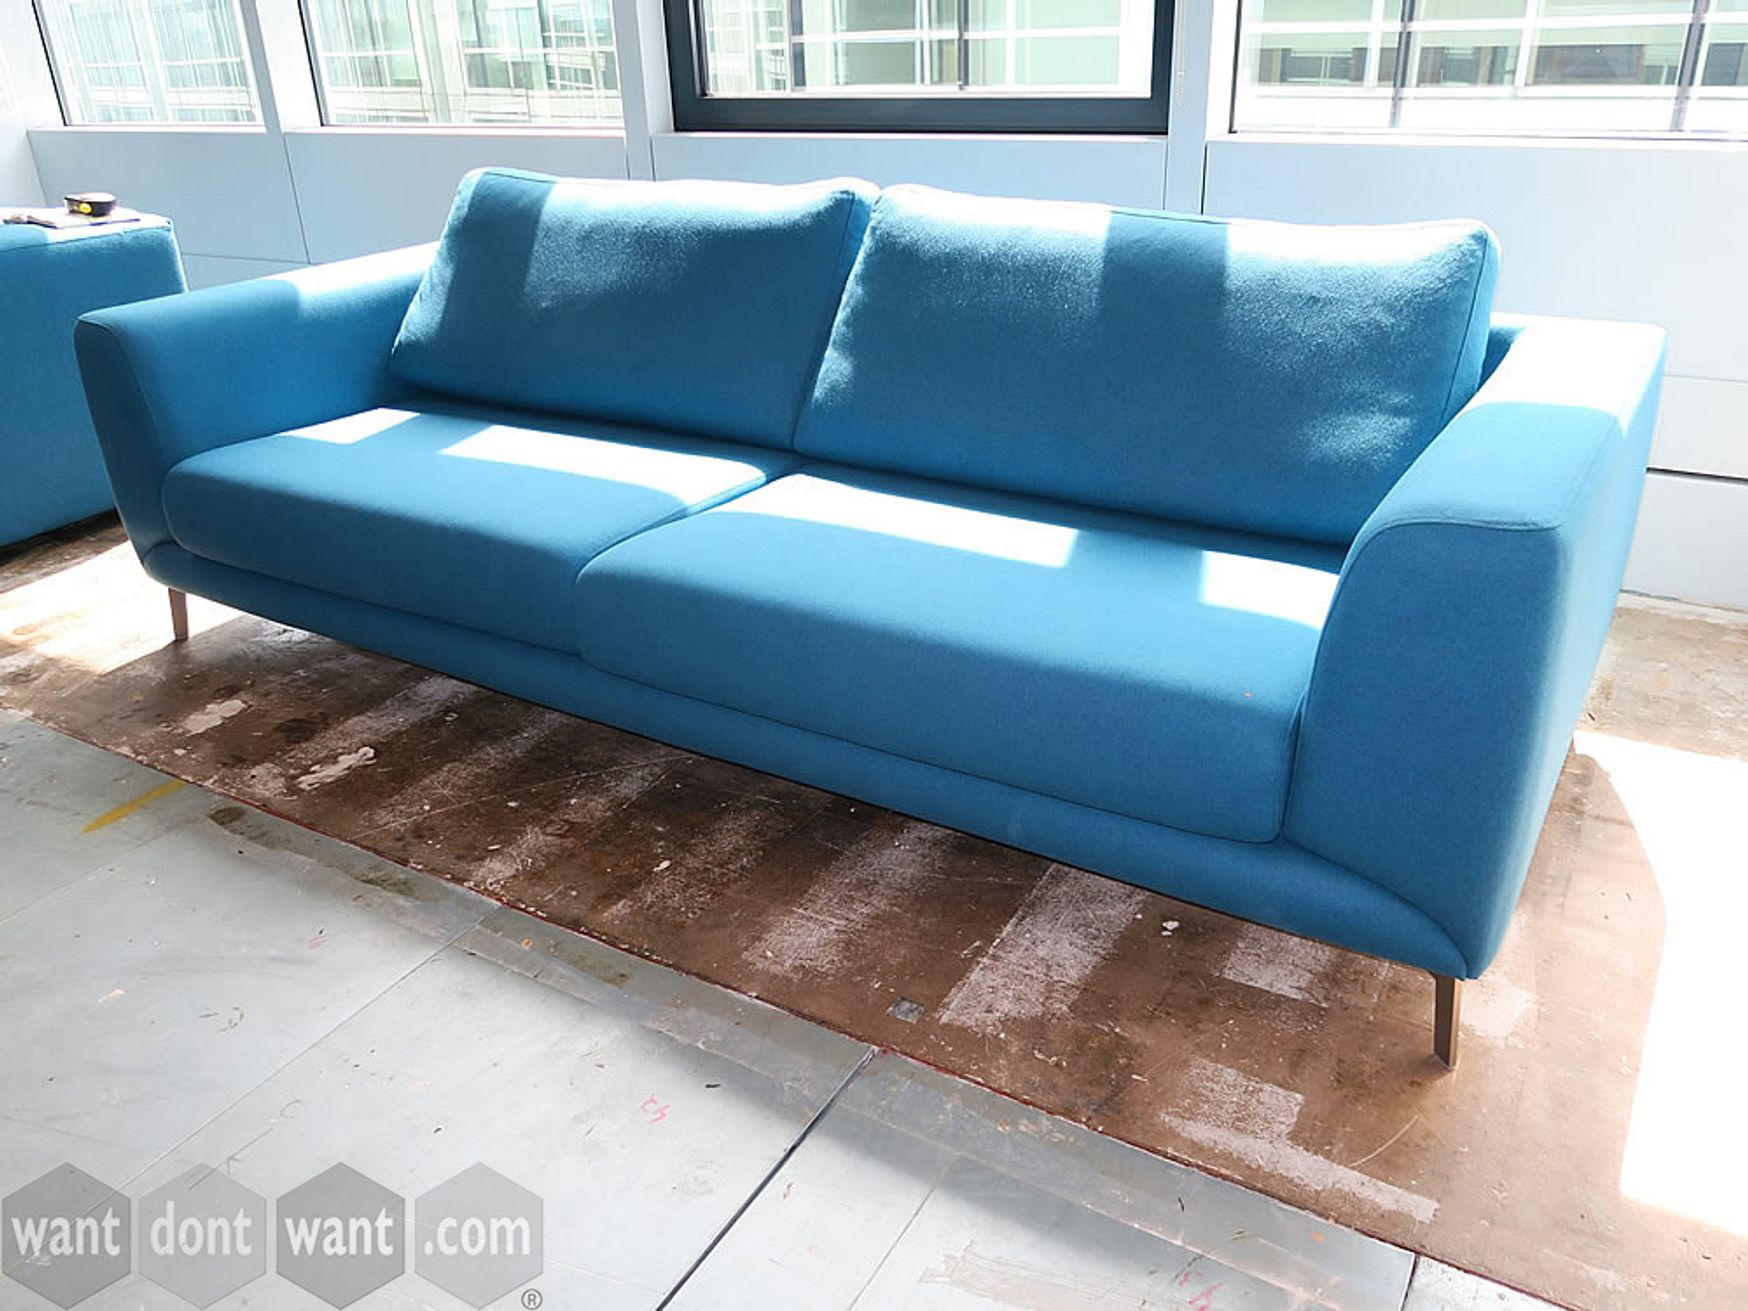 Used BoConcept sofa upholstered in blue fabric.